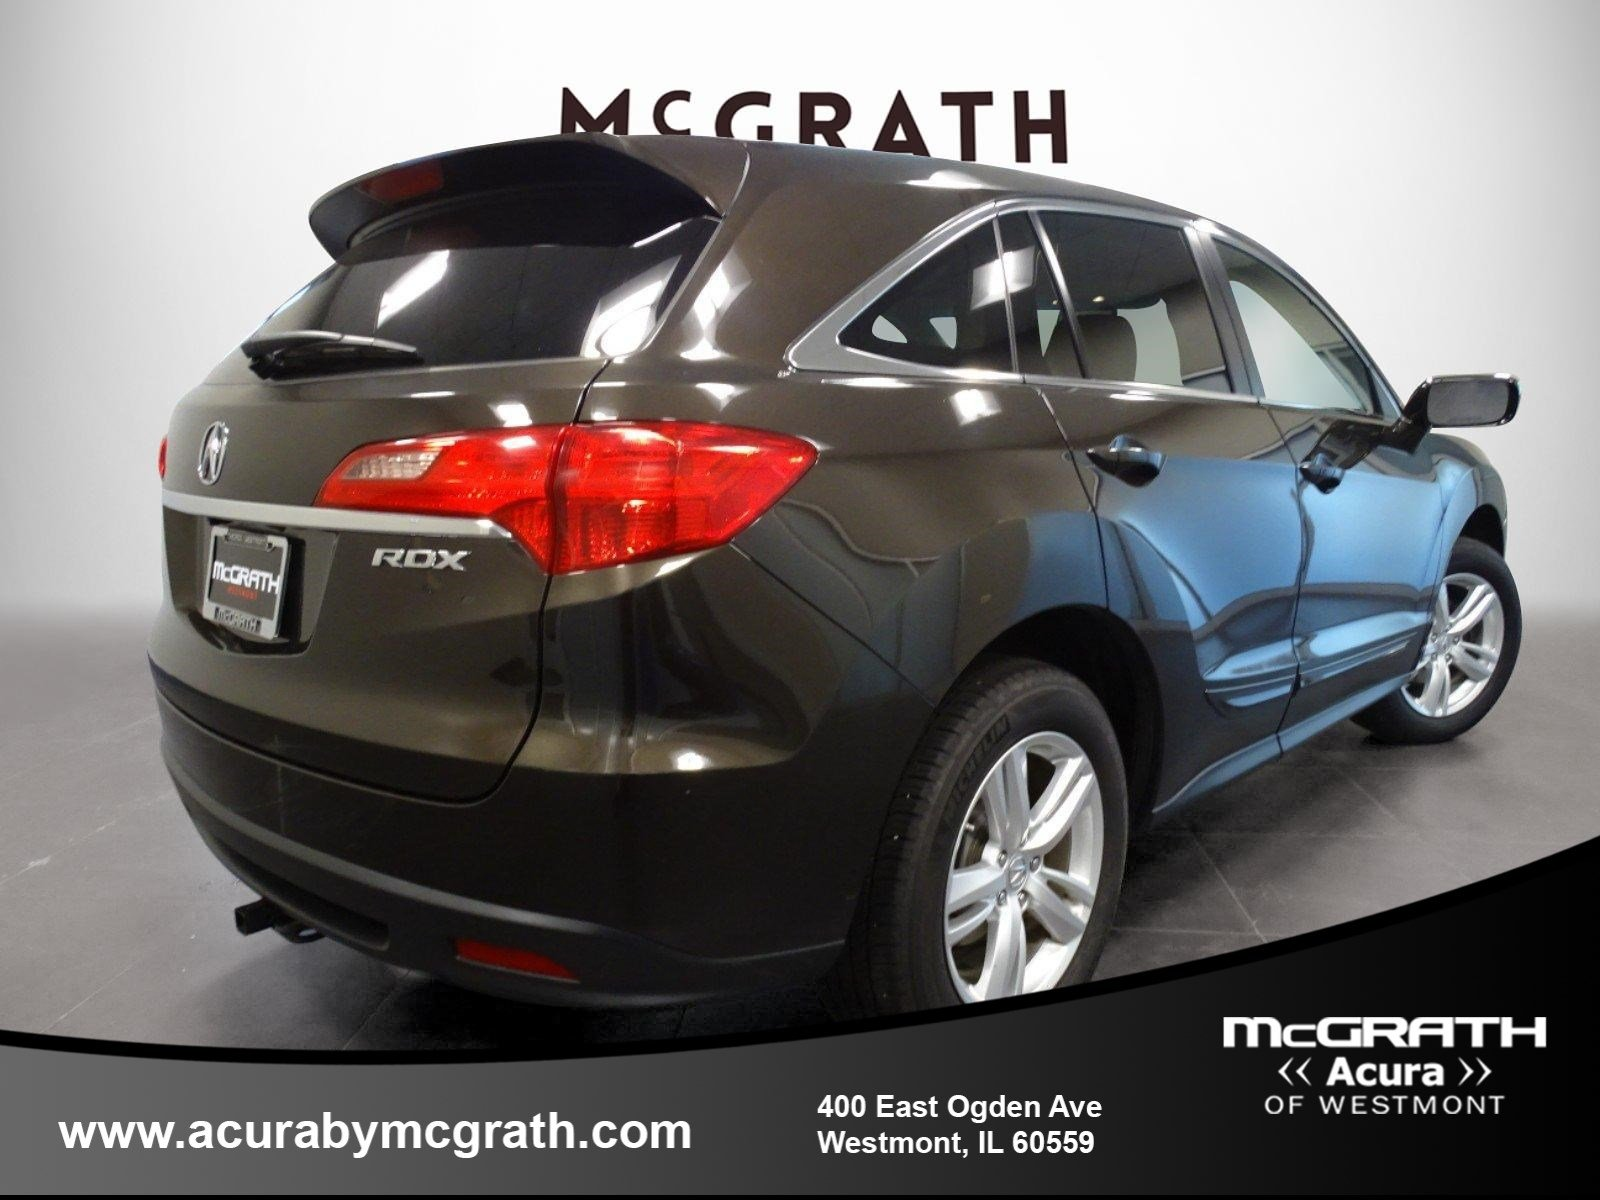 Certified Pre-Owned 2014 Acura RDX Sport Utility in Westmont #V7995A on